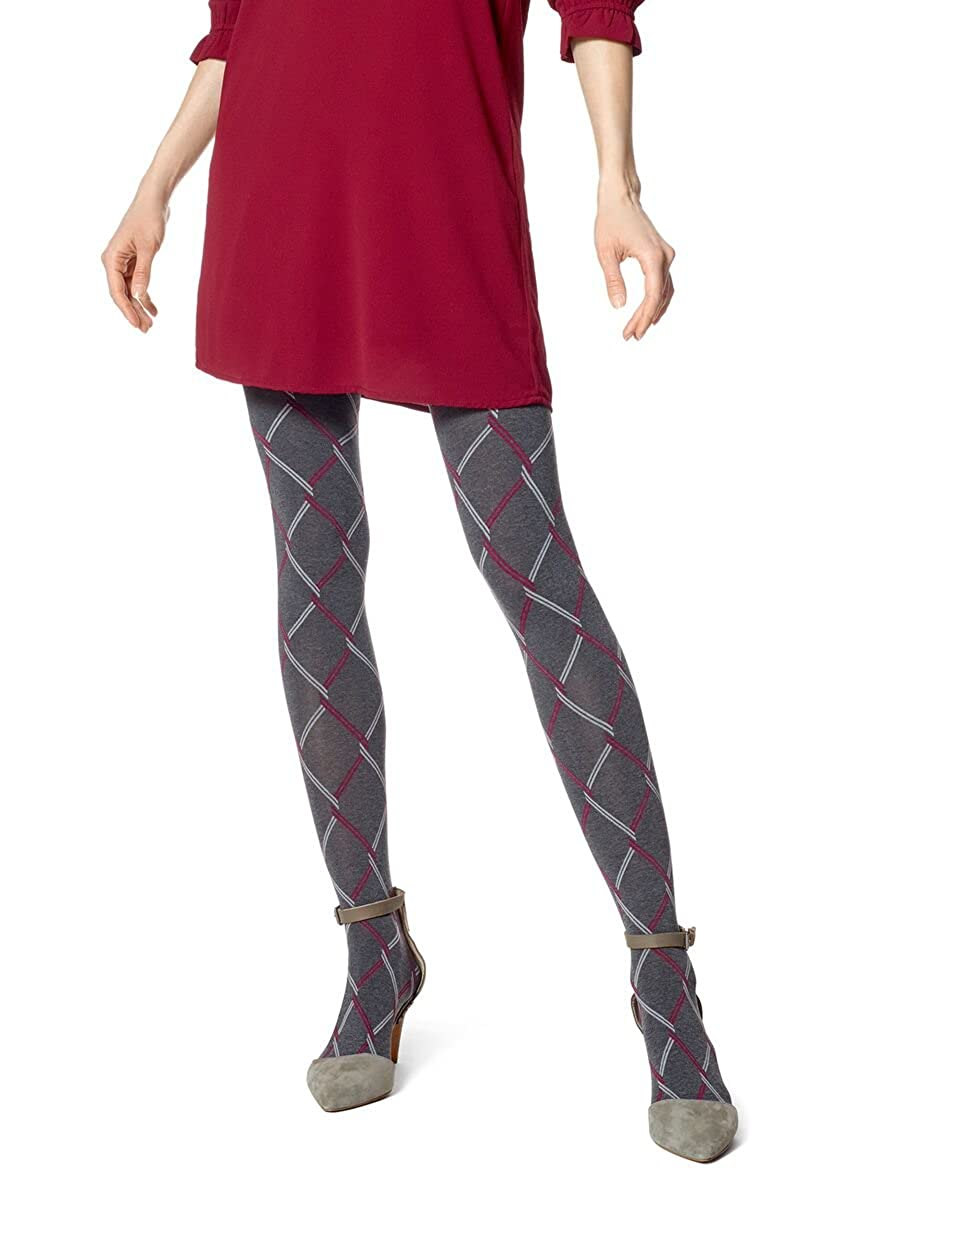 87911c15dd3 Top 10 wholesale Hue Tights - Chinabrands.com